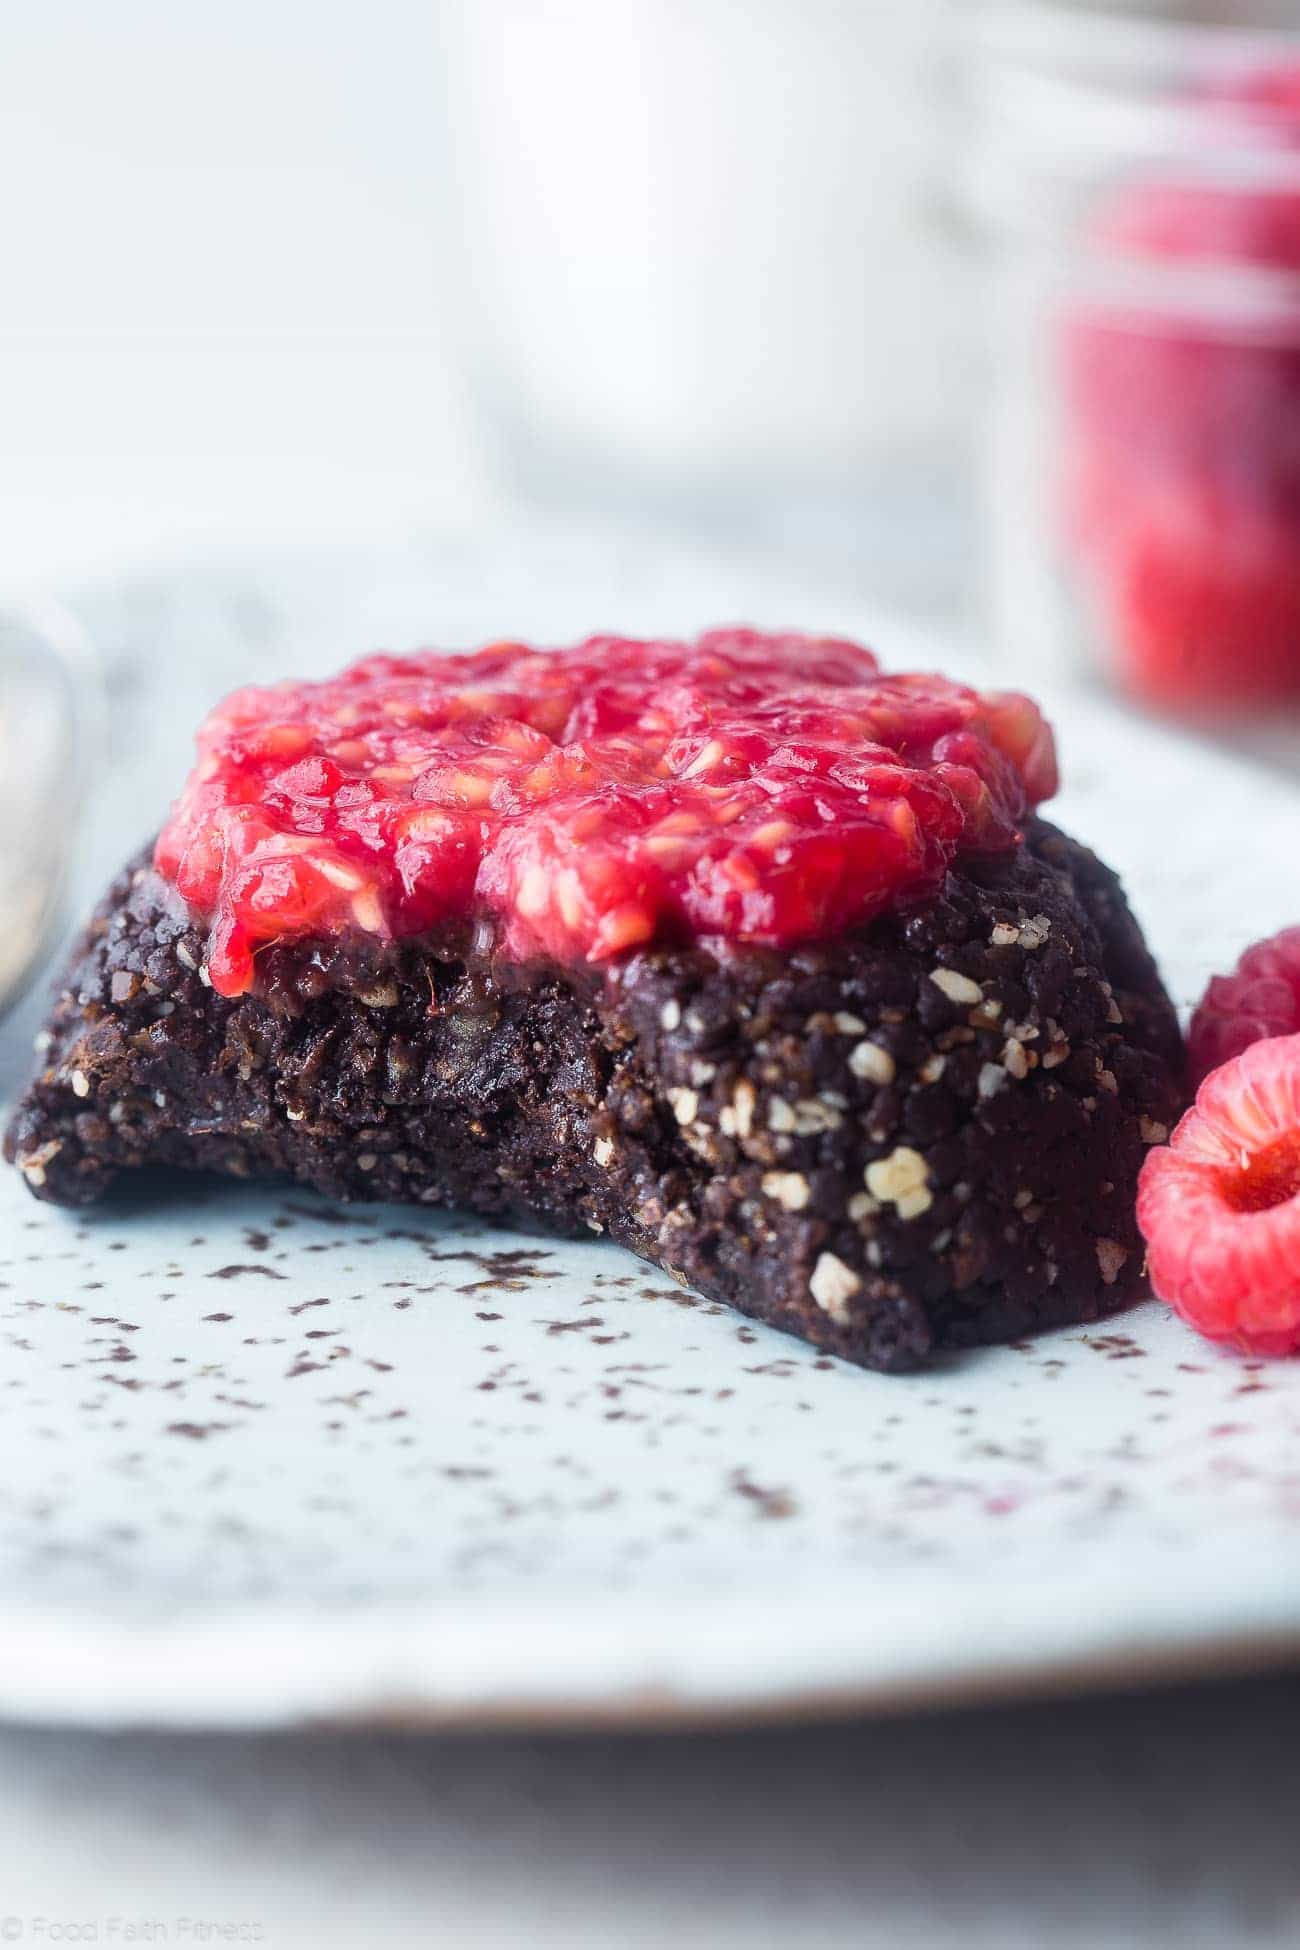 Raspberry Raw Single Serving Brownie - This no-bake single serving brownie is low fat, ready in 5 mins and has a secret, muscle-building ingredient! The perfect post workout snack or anytime treat! | Foodfaithfitness.com | @FoodFaithFit